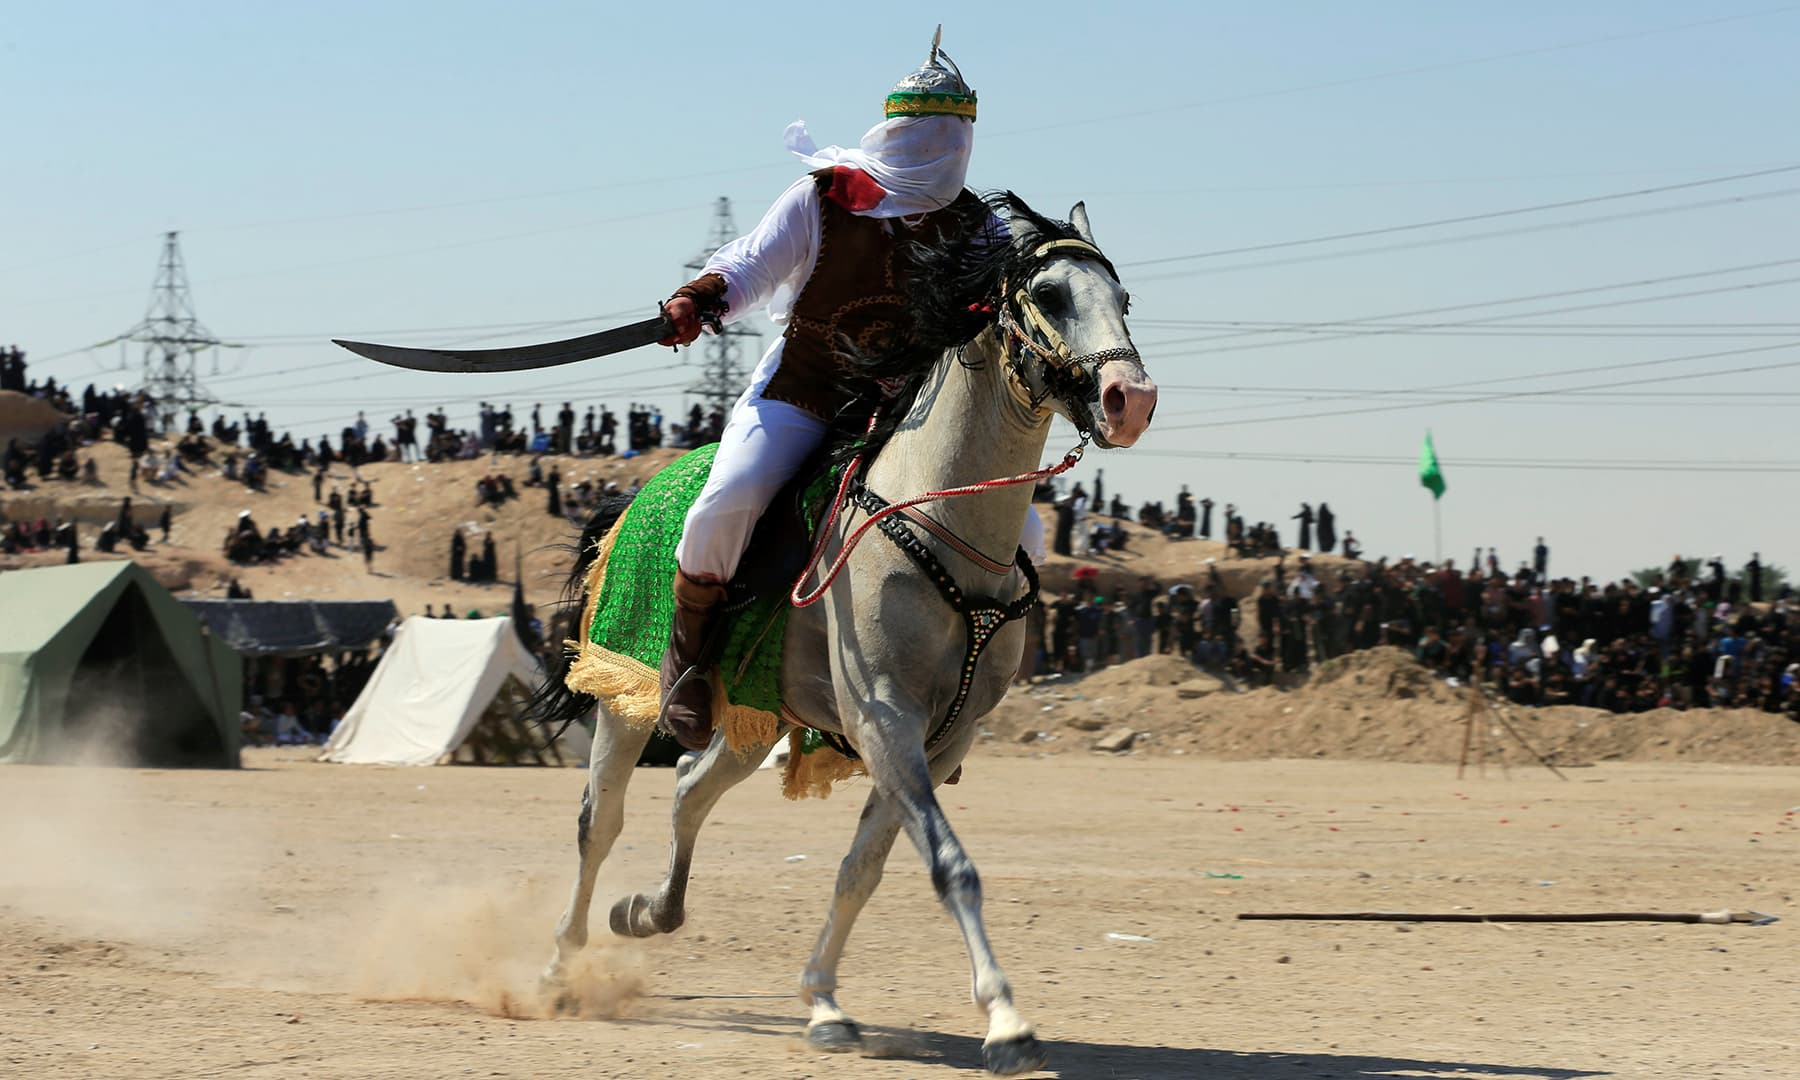 A local actor dressed as ancient warrior re-enacts a scene from the 7th century battle of Karbala during a ceremony marking Ashura in the holy city of Najaf, Iraq, September 10. — Reuters